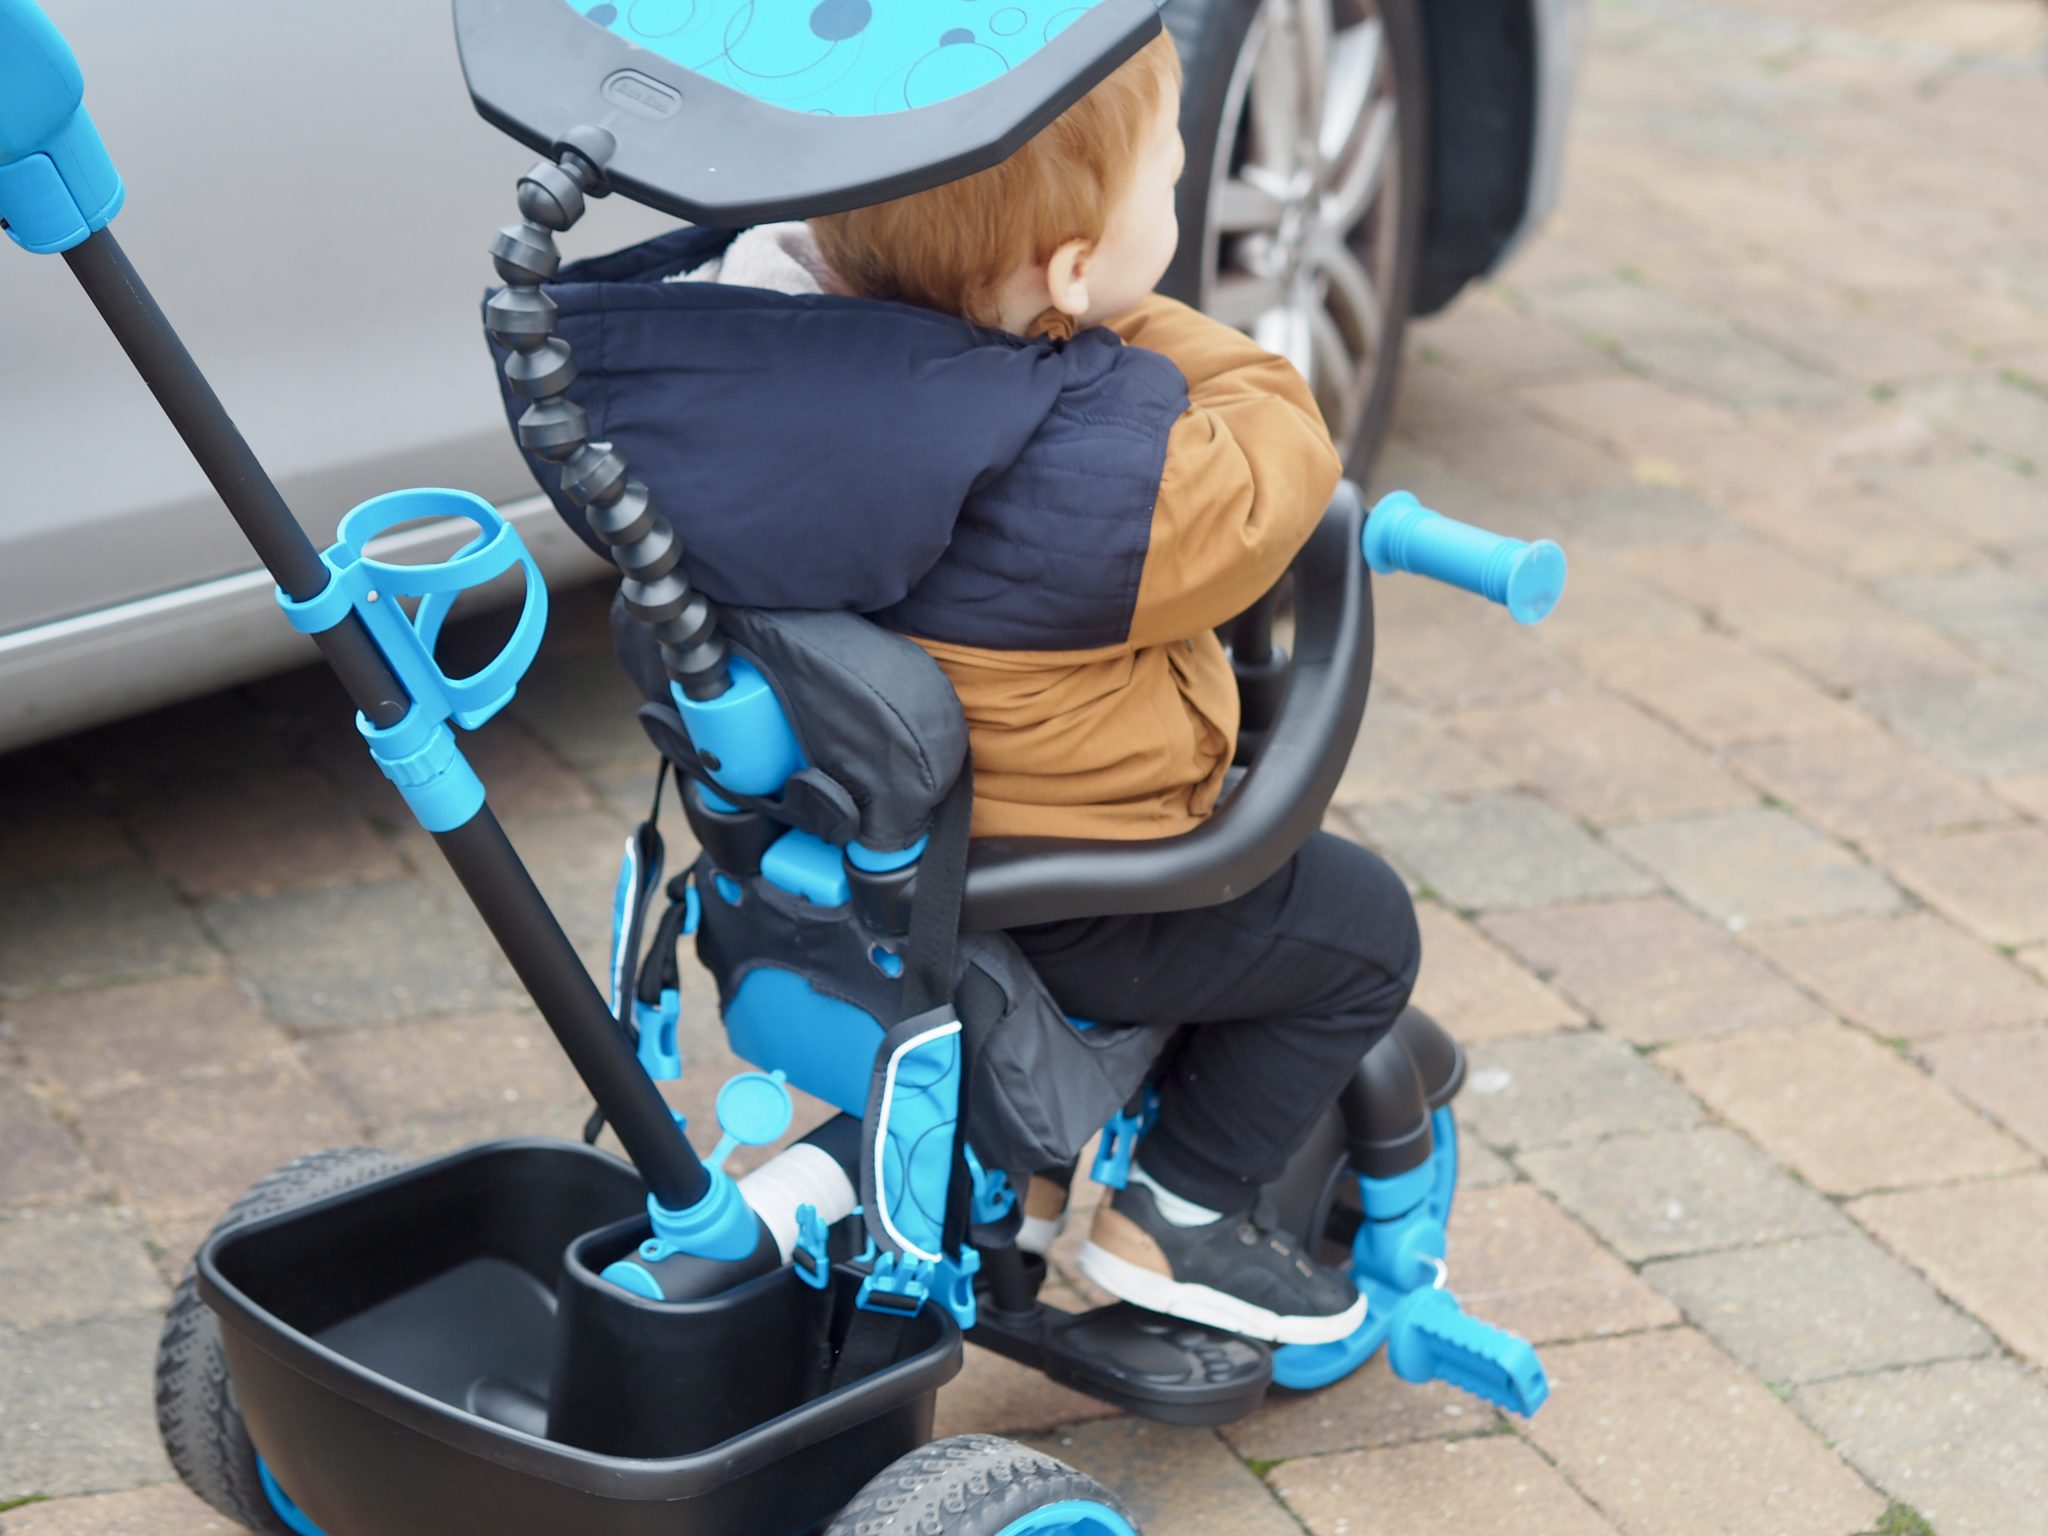 The best toddler trike